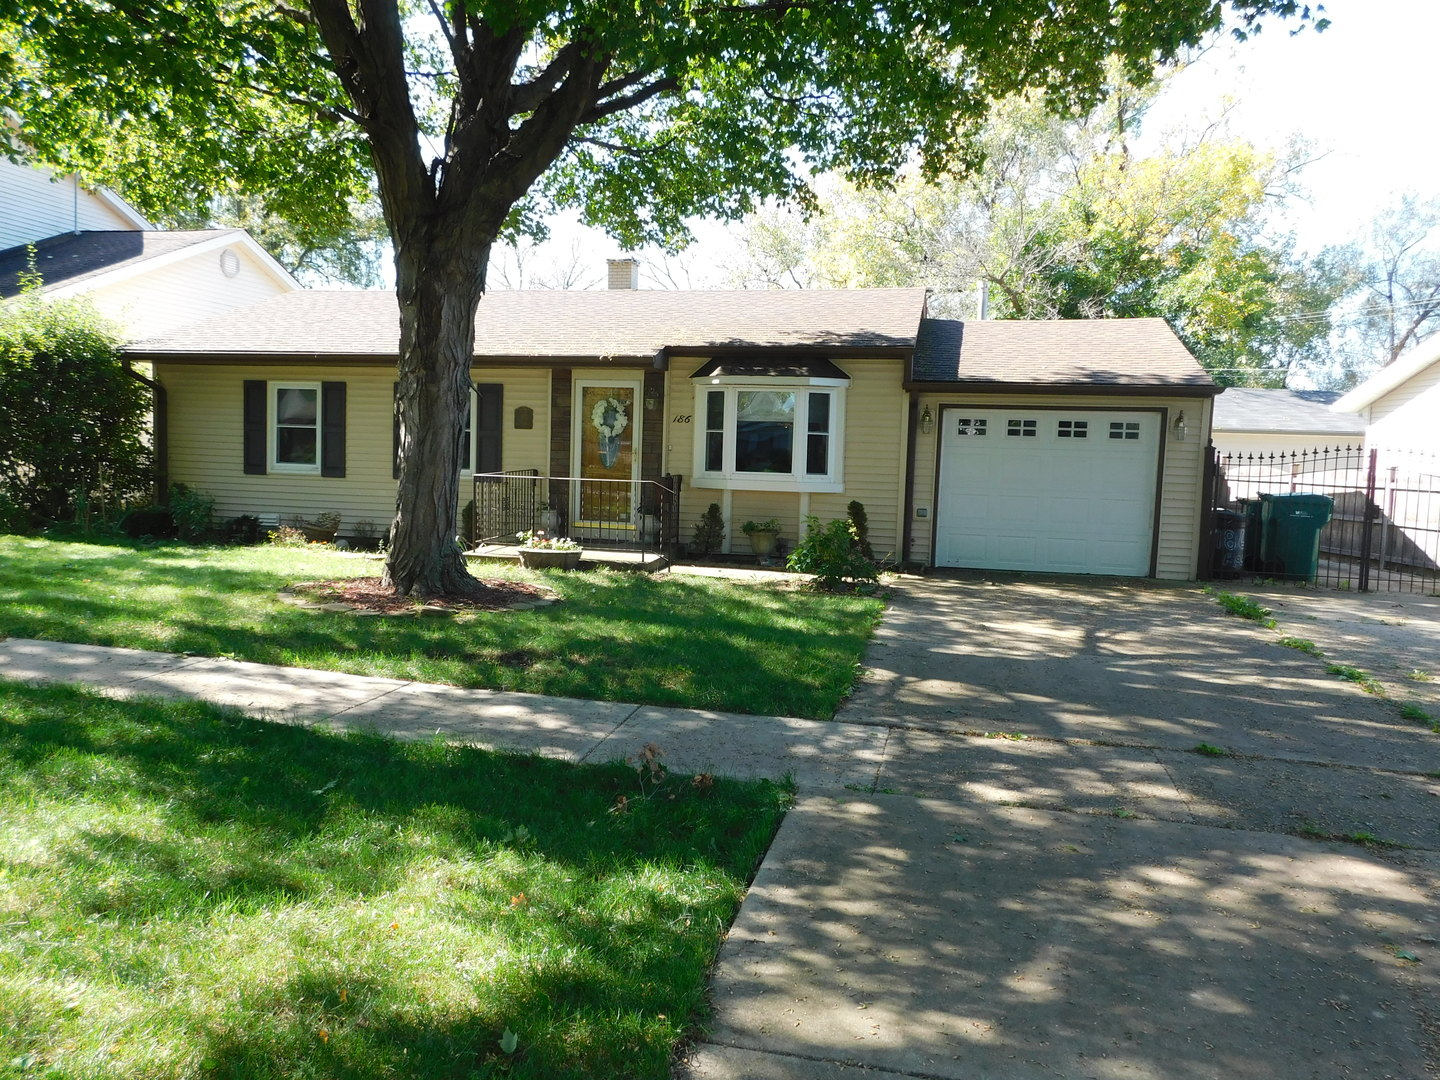 186 RAUPP Boulevard, Buffalo Grove in Cook County, IL 60089 Home for Sale